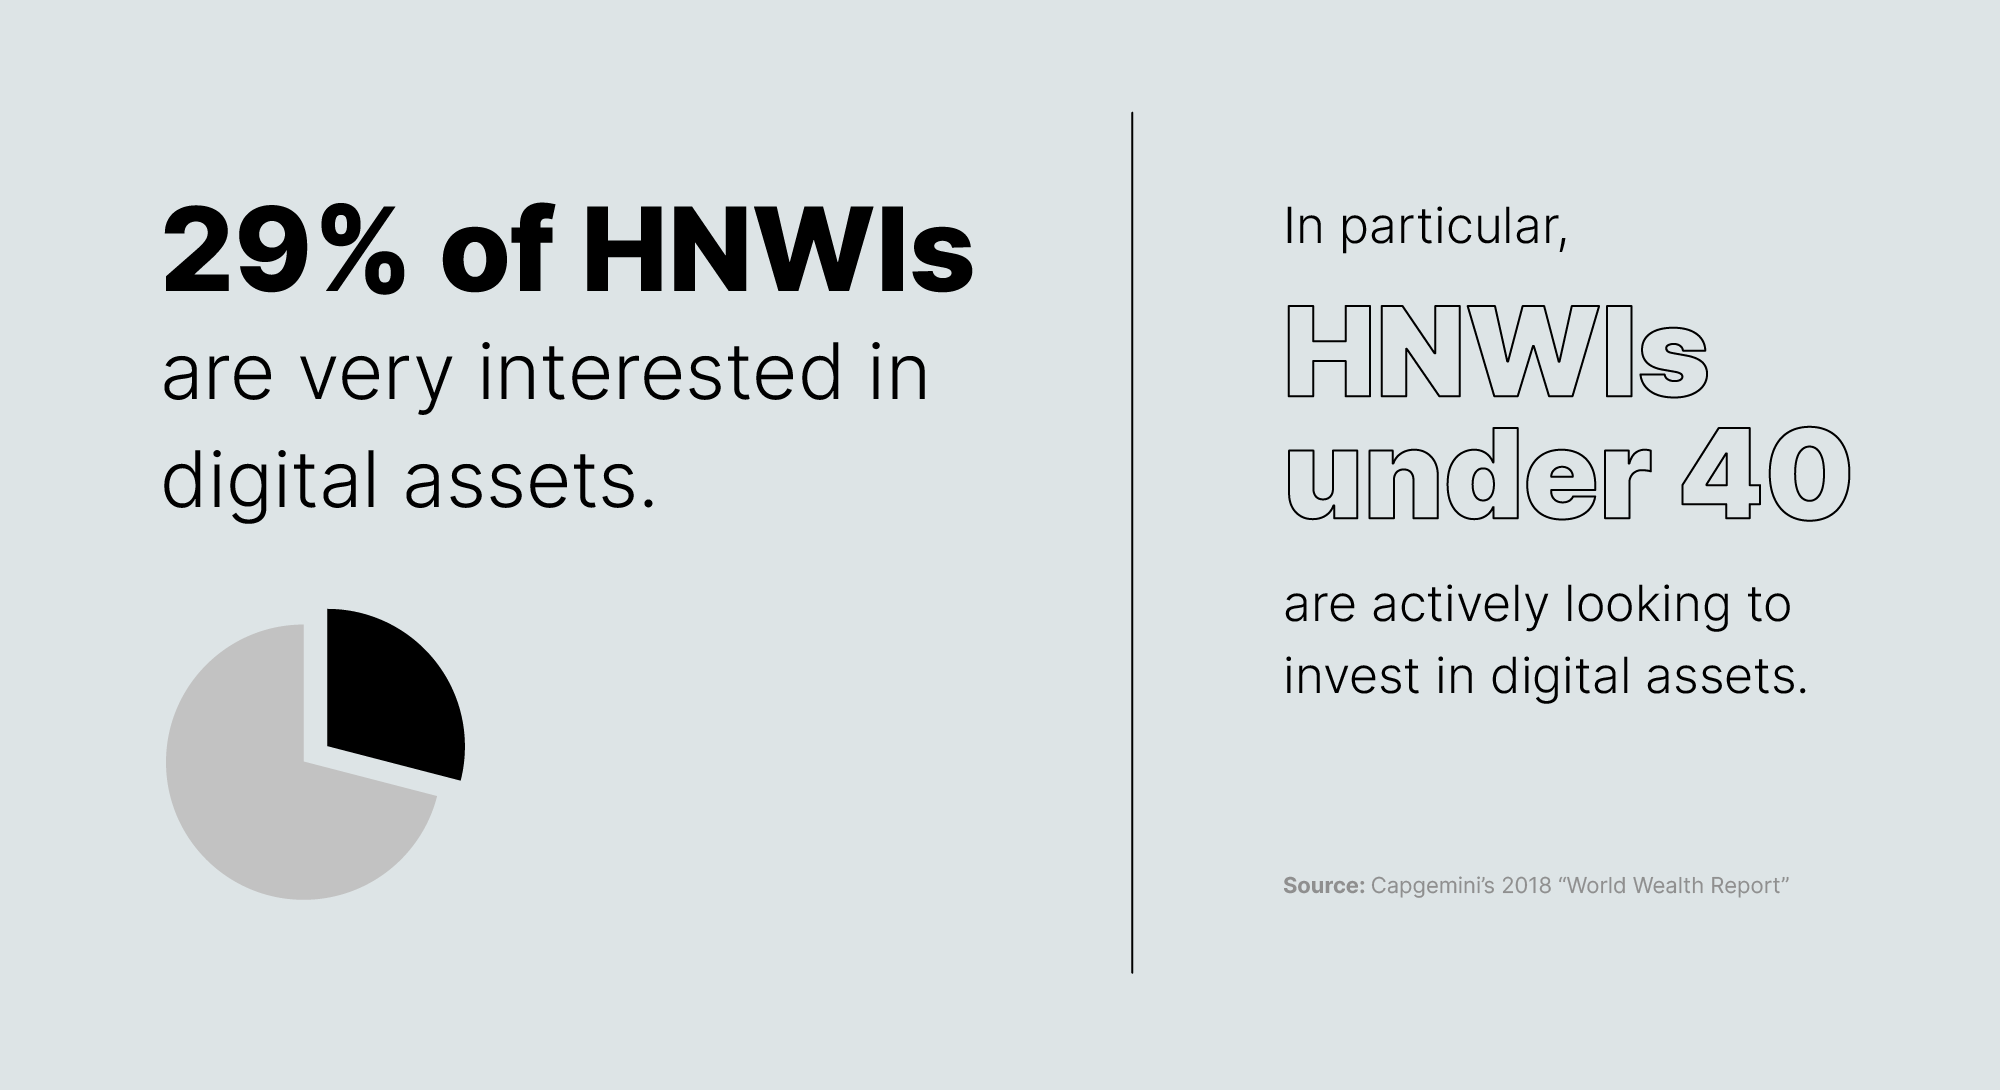 HNWI interest in digital assets